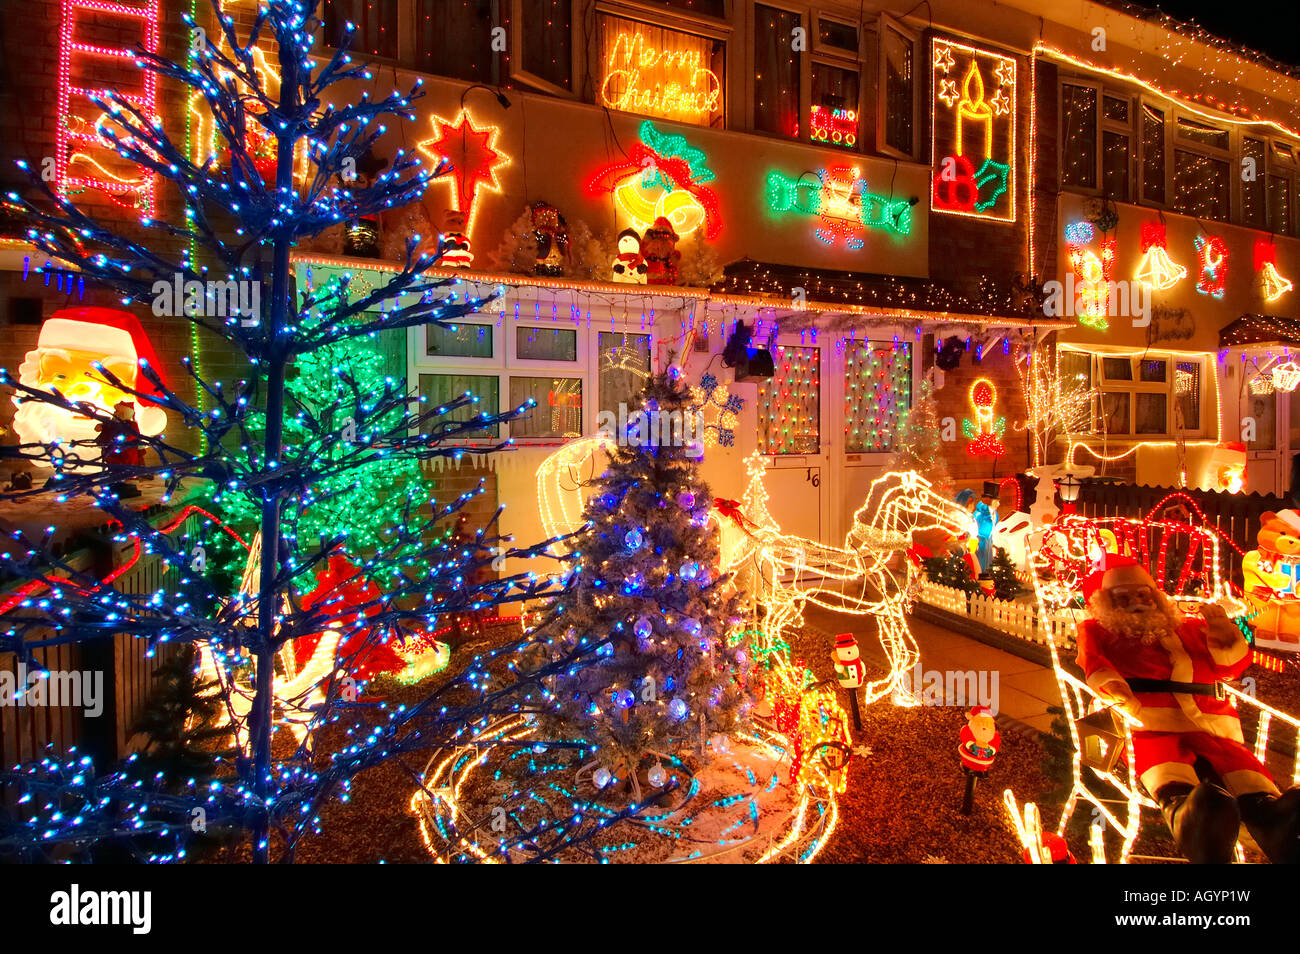 Tacky Christmas Decorations House High Resolution Stock Photography And Images Alamy